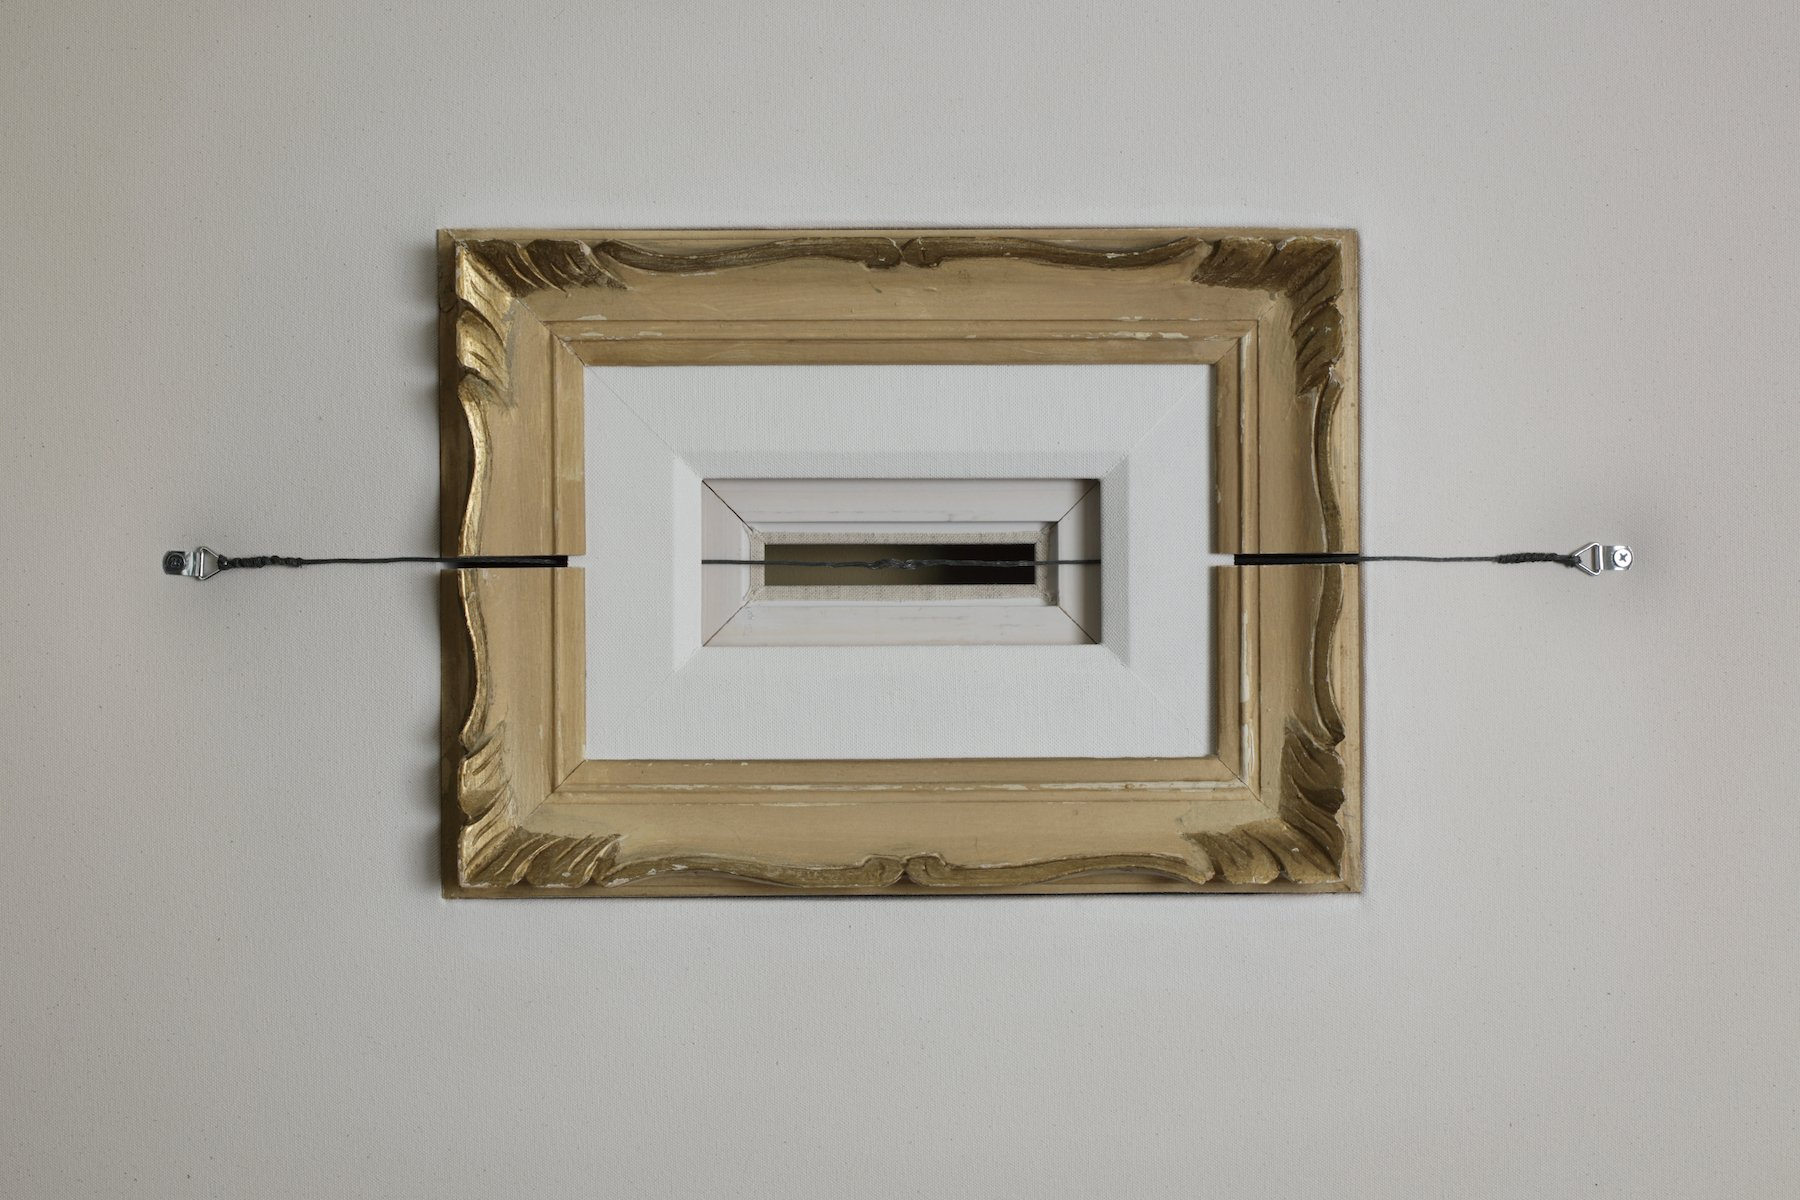 Double Liner, Mixed media, 36 x 47 ½ x 2 ½ inches